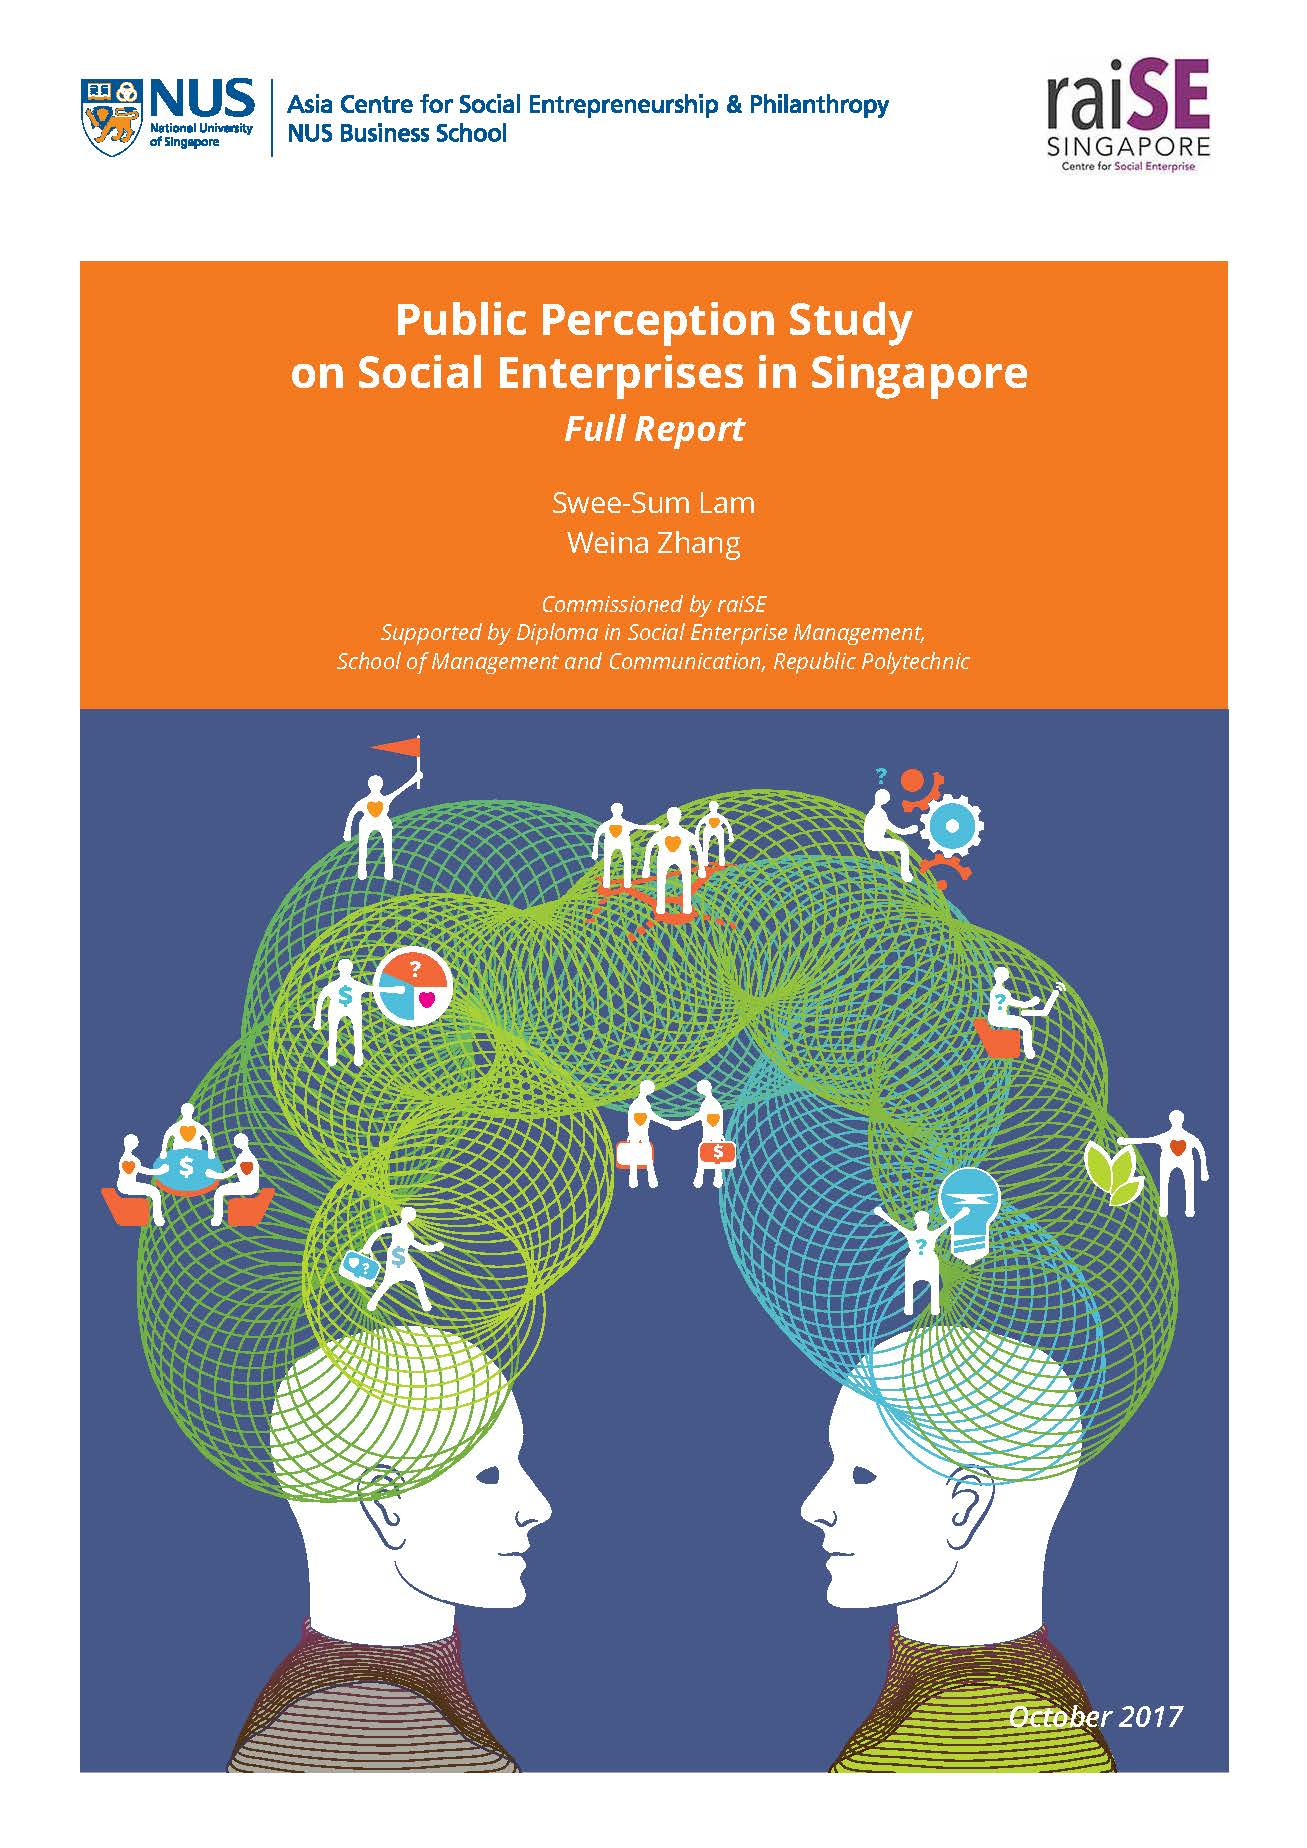 Public Perception on Social Enterprises in Singapore